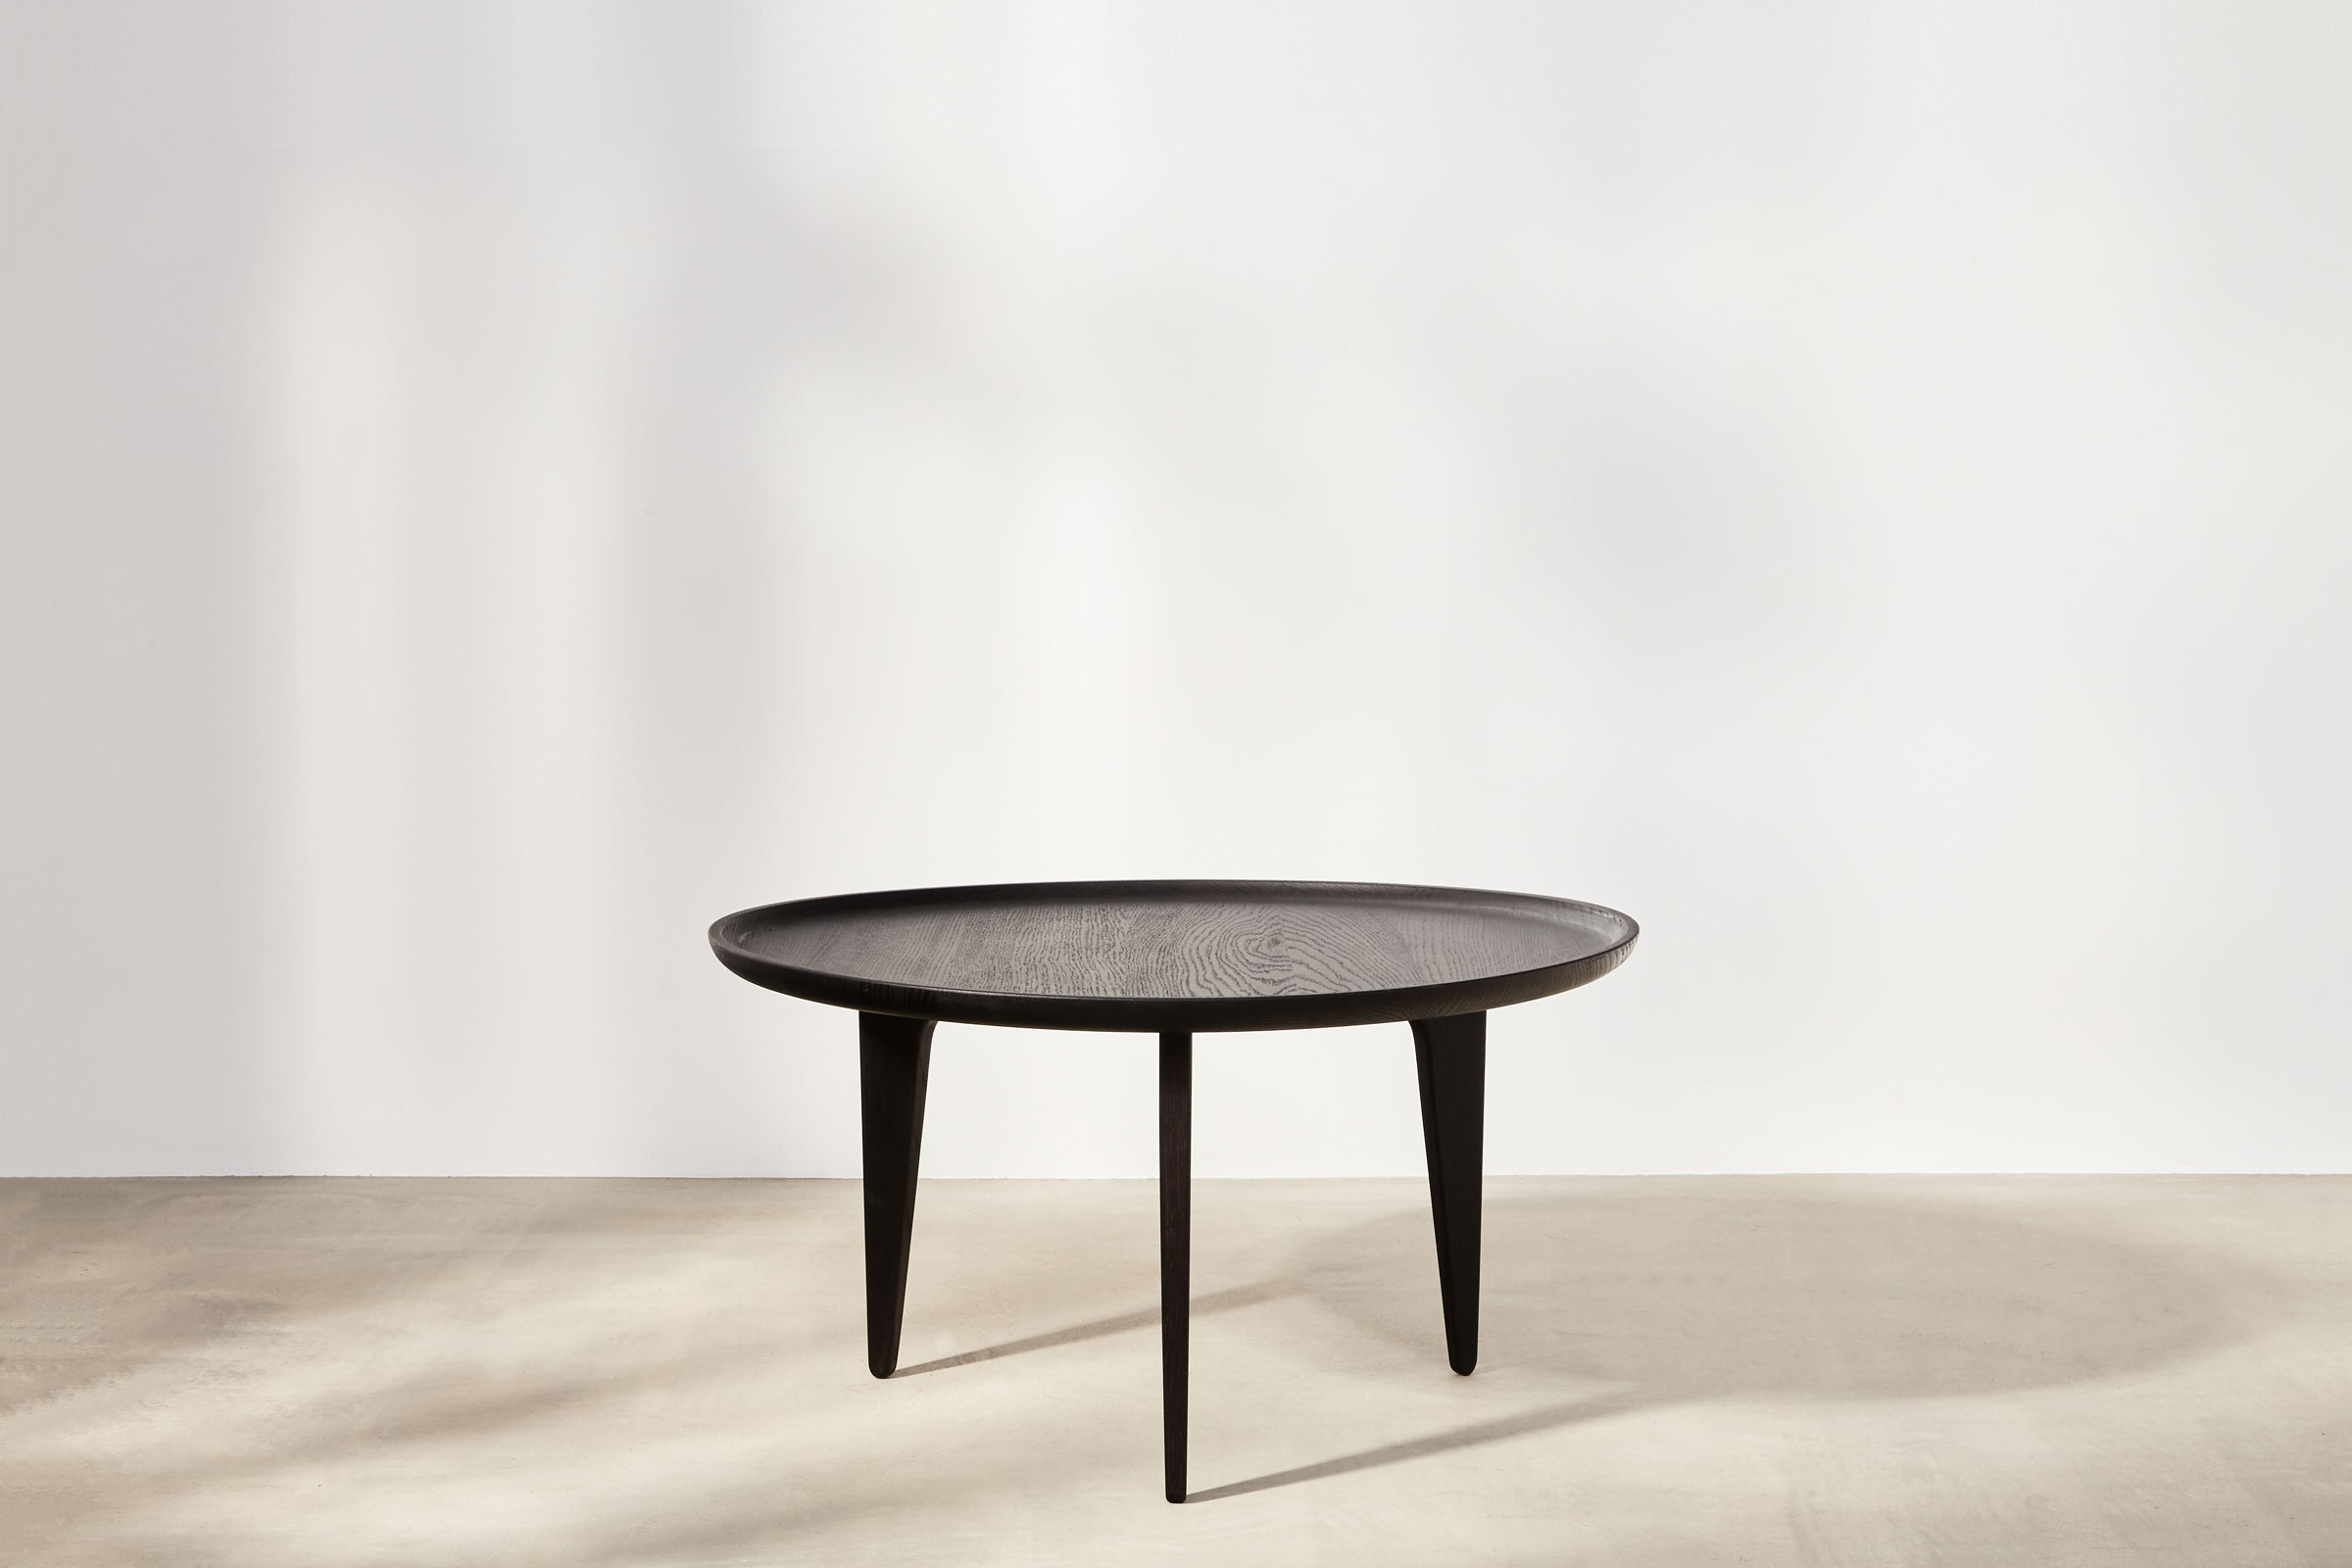 Widely Used Gleda Coffee Table – Handmade In Englandbenchmark Throughout Natural Wheel Coffee Tables (View 15 of 20)